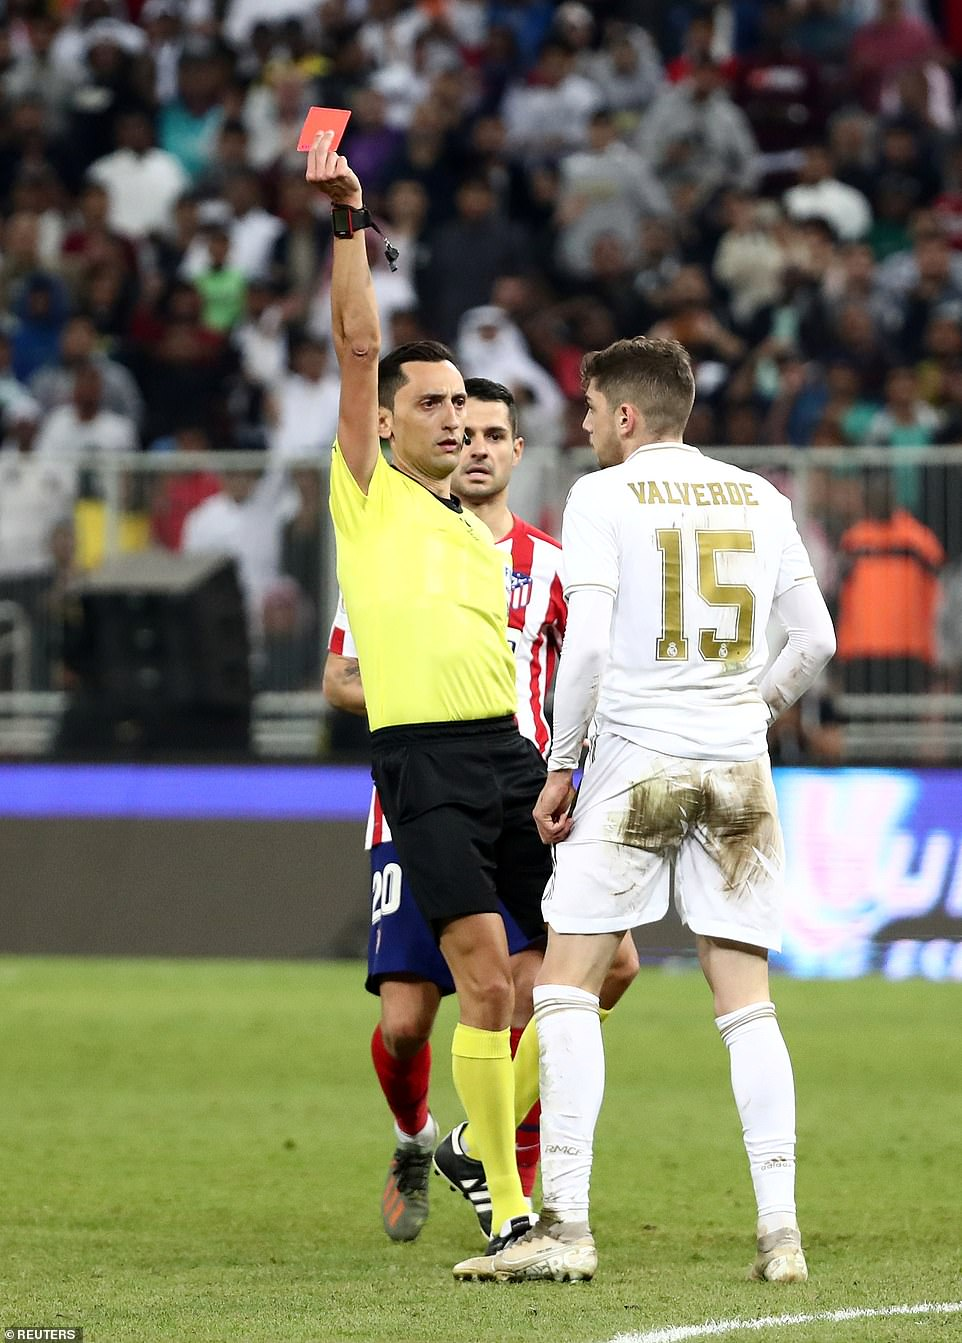 The referee shows a straight red card to Federico Valverde of Real Madrid during the second half of extra time